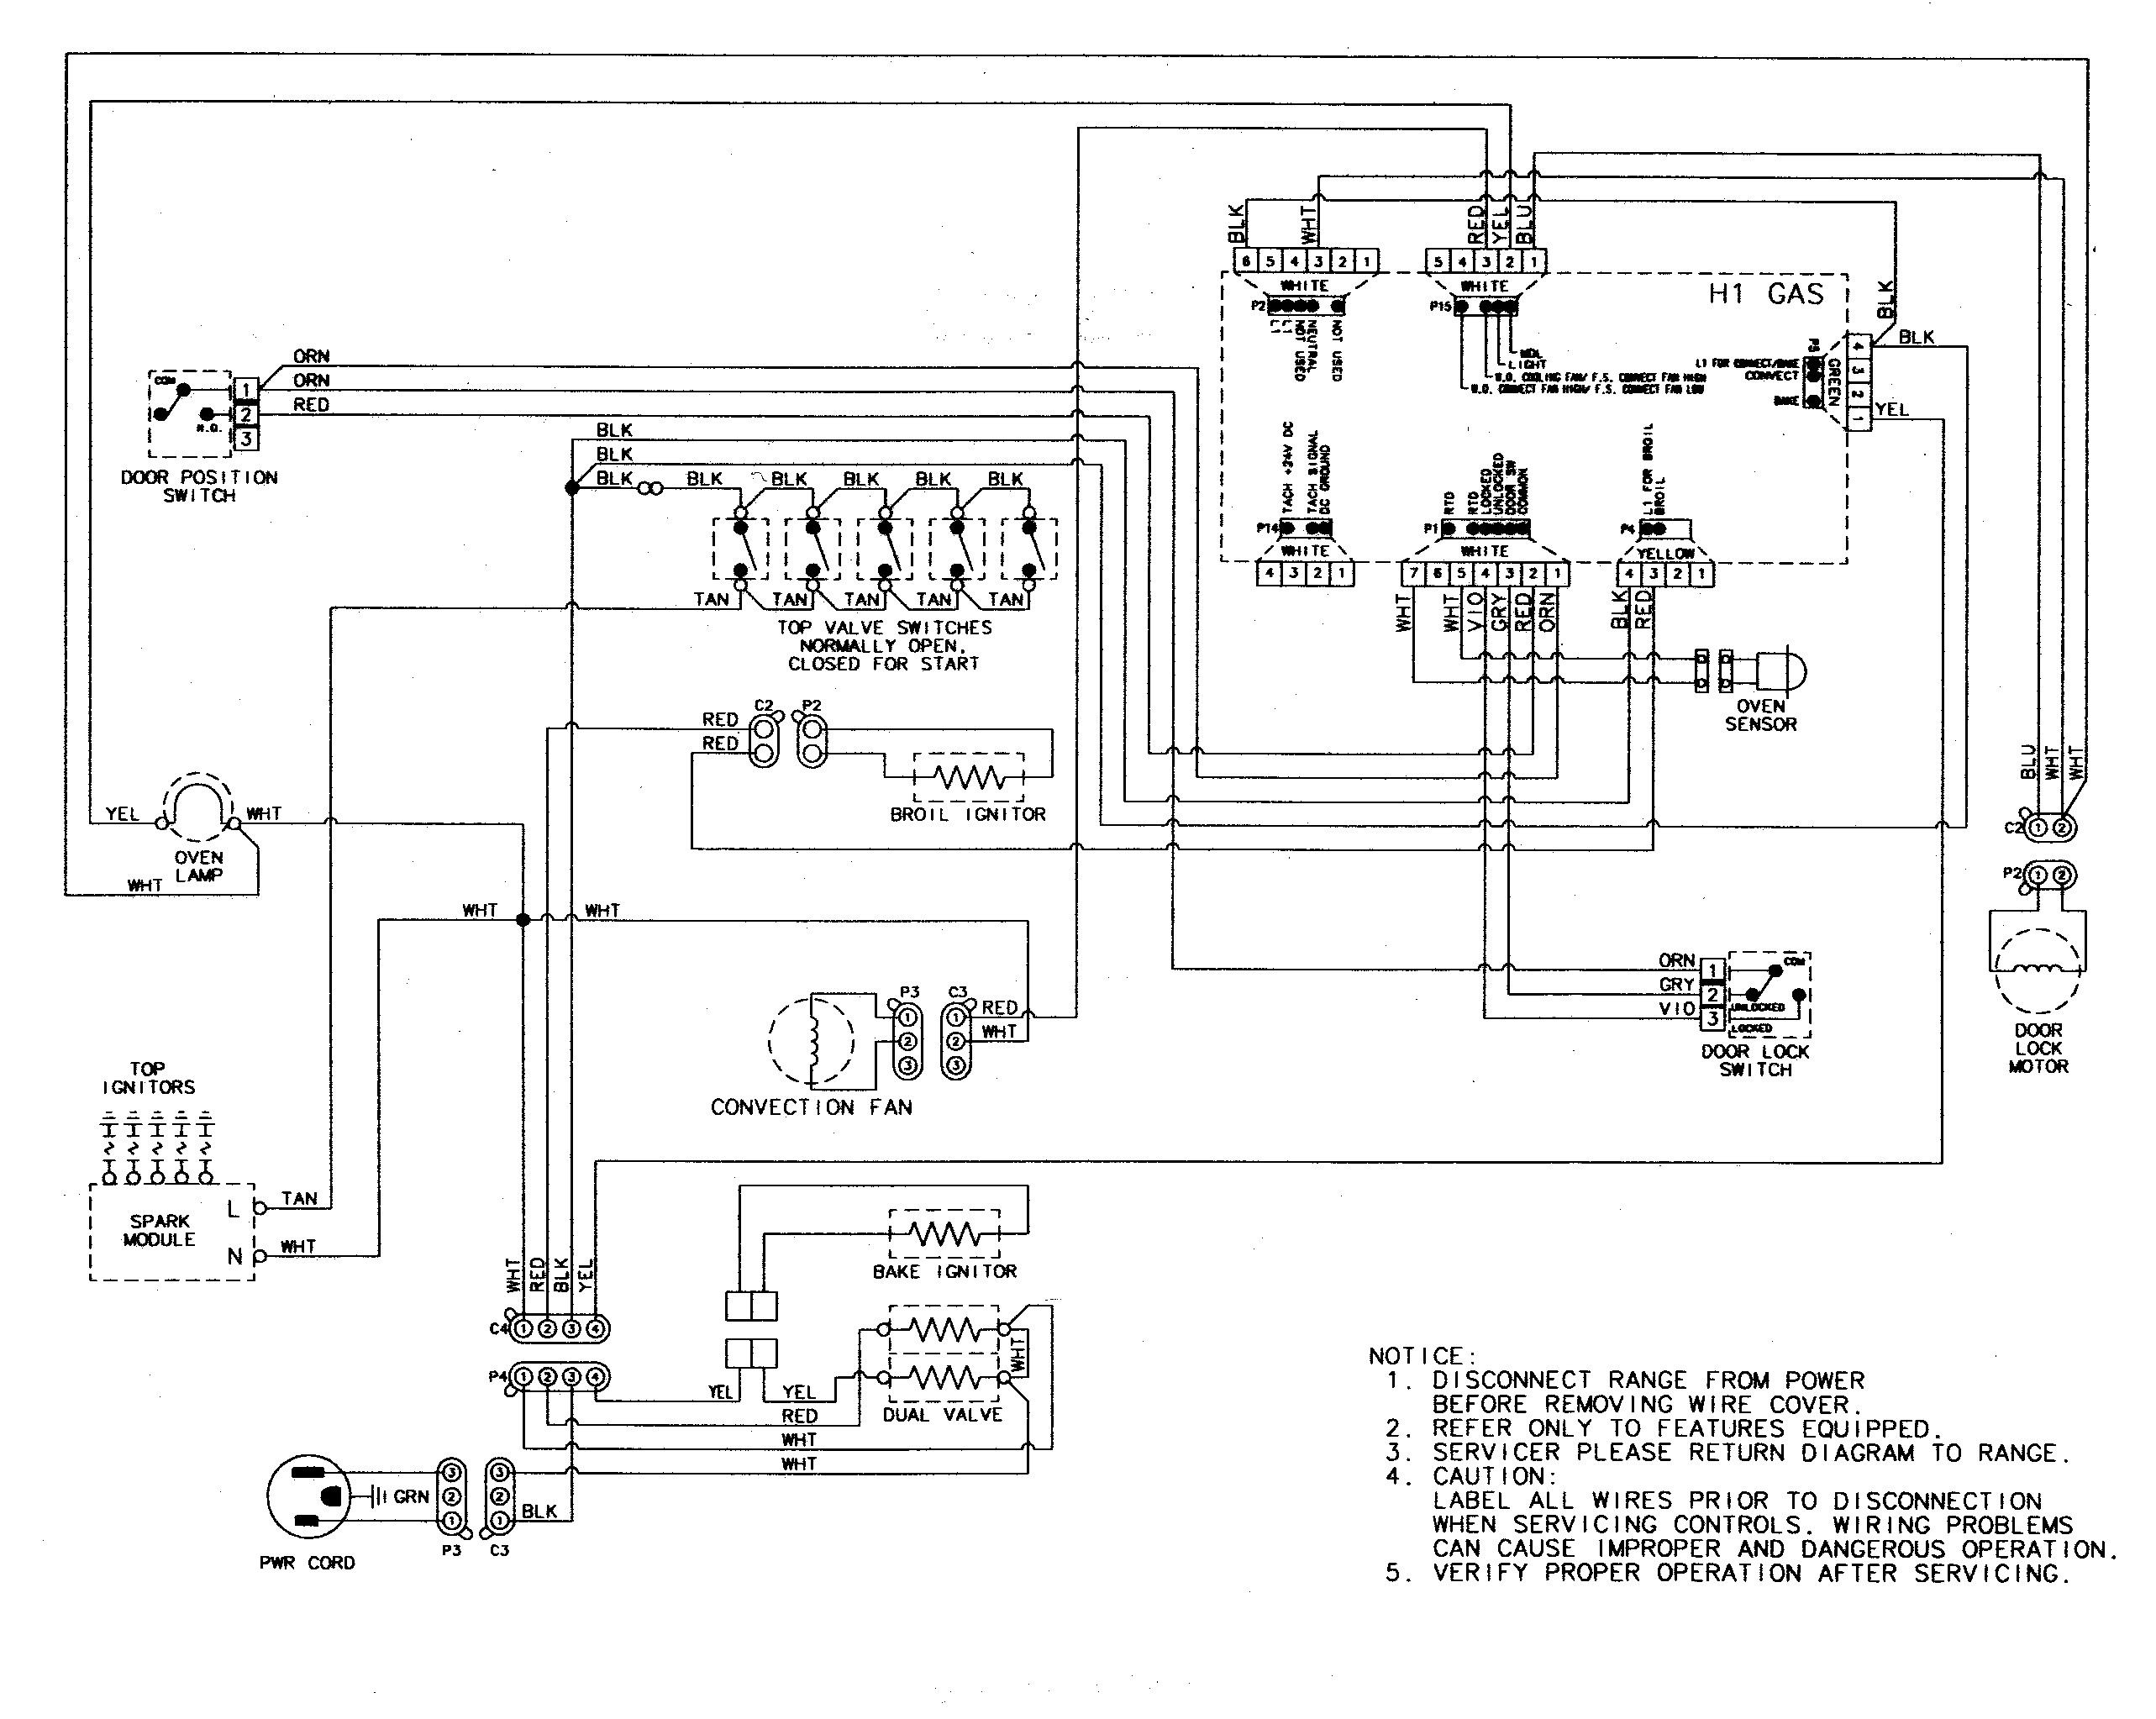 basic wiring schematics power king 1620